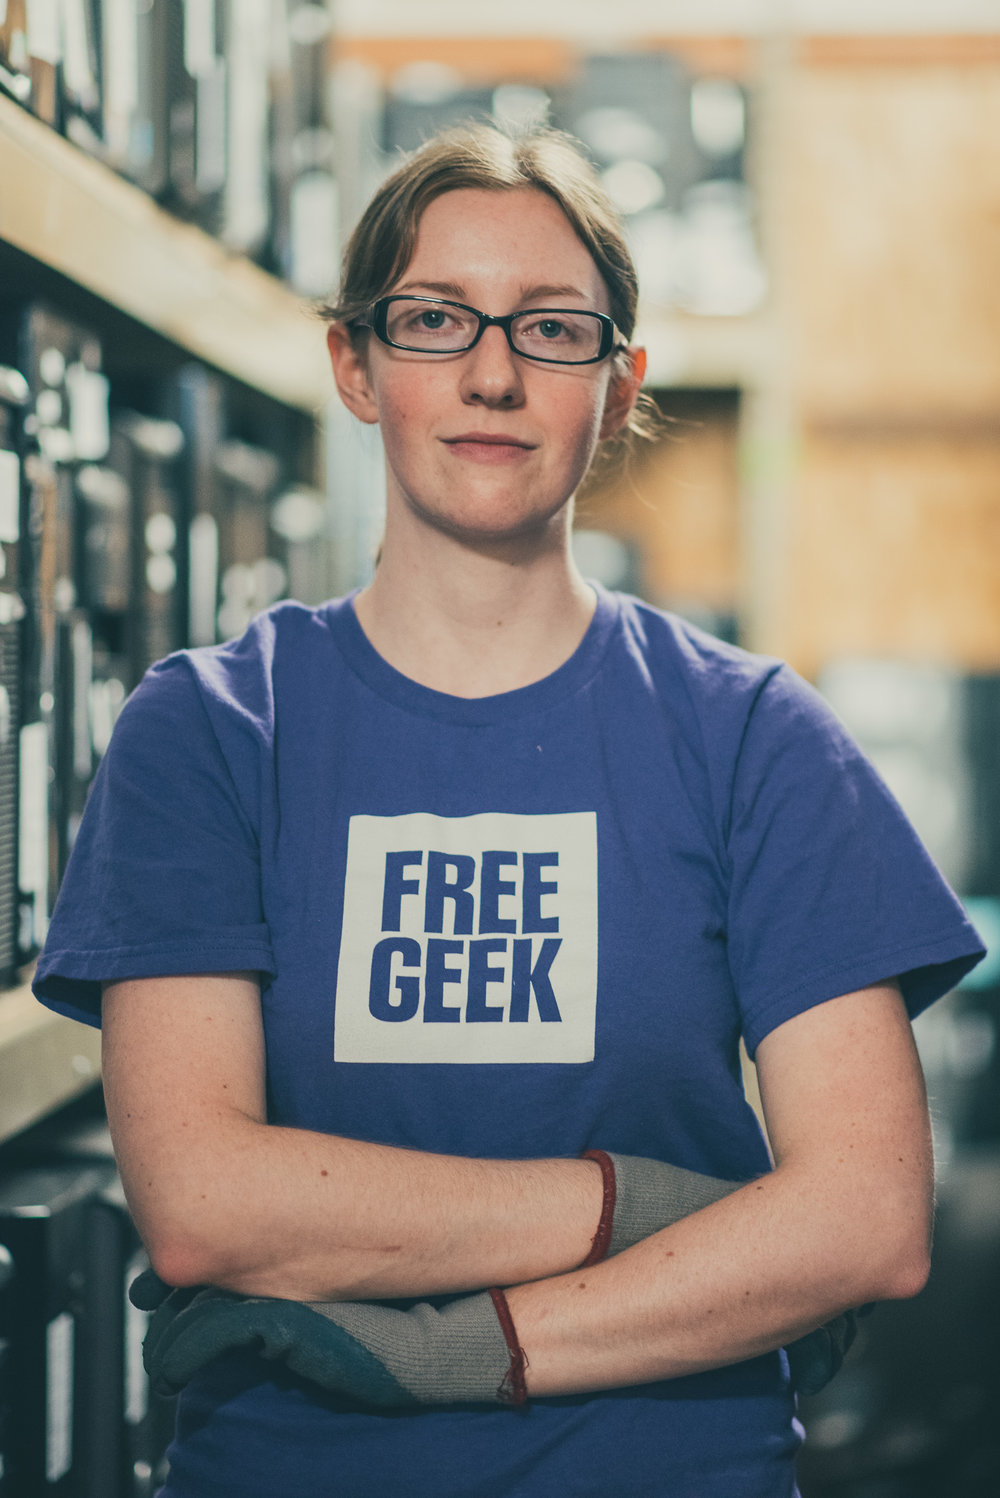 Free Geek Another Look 09.10.15-175.jpg